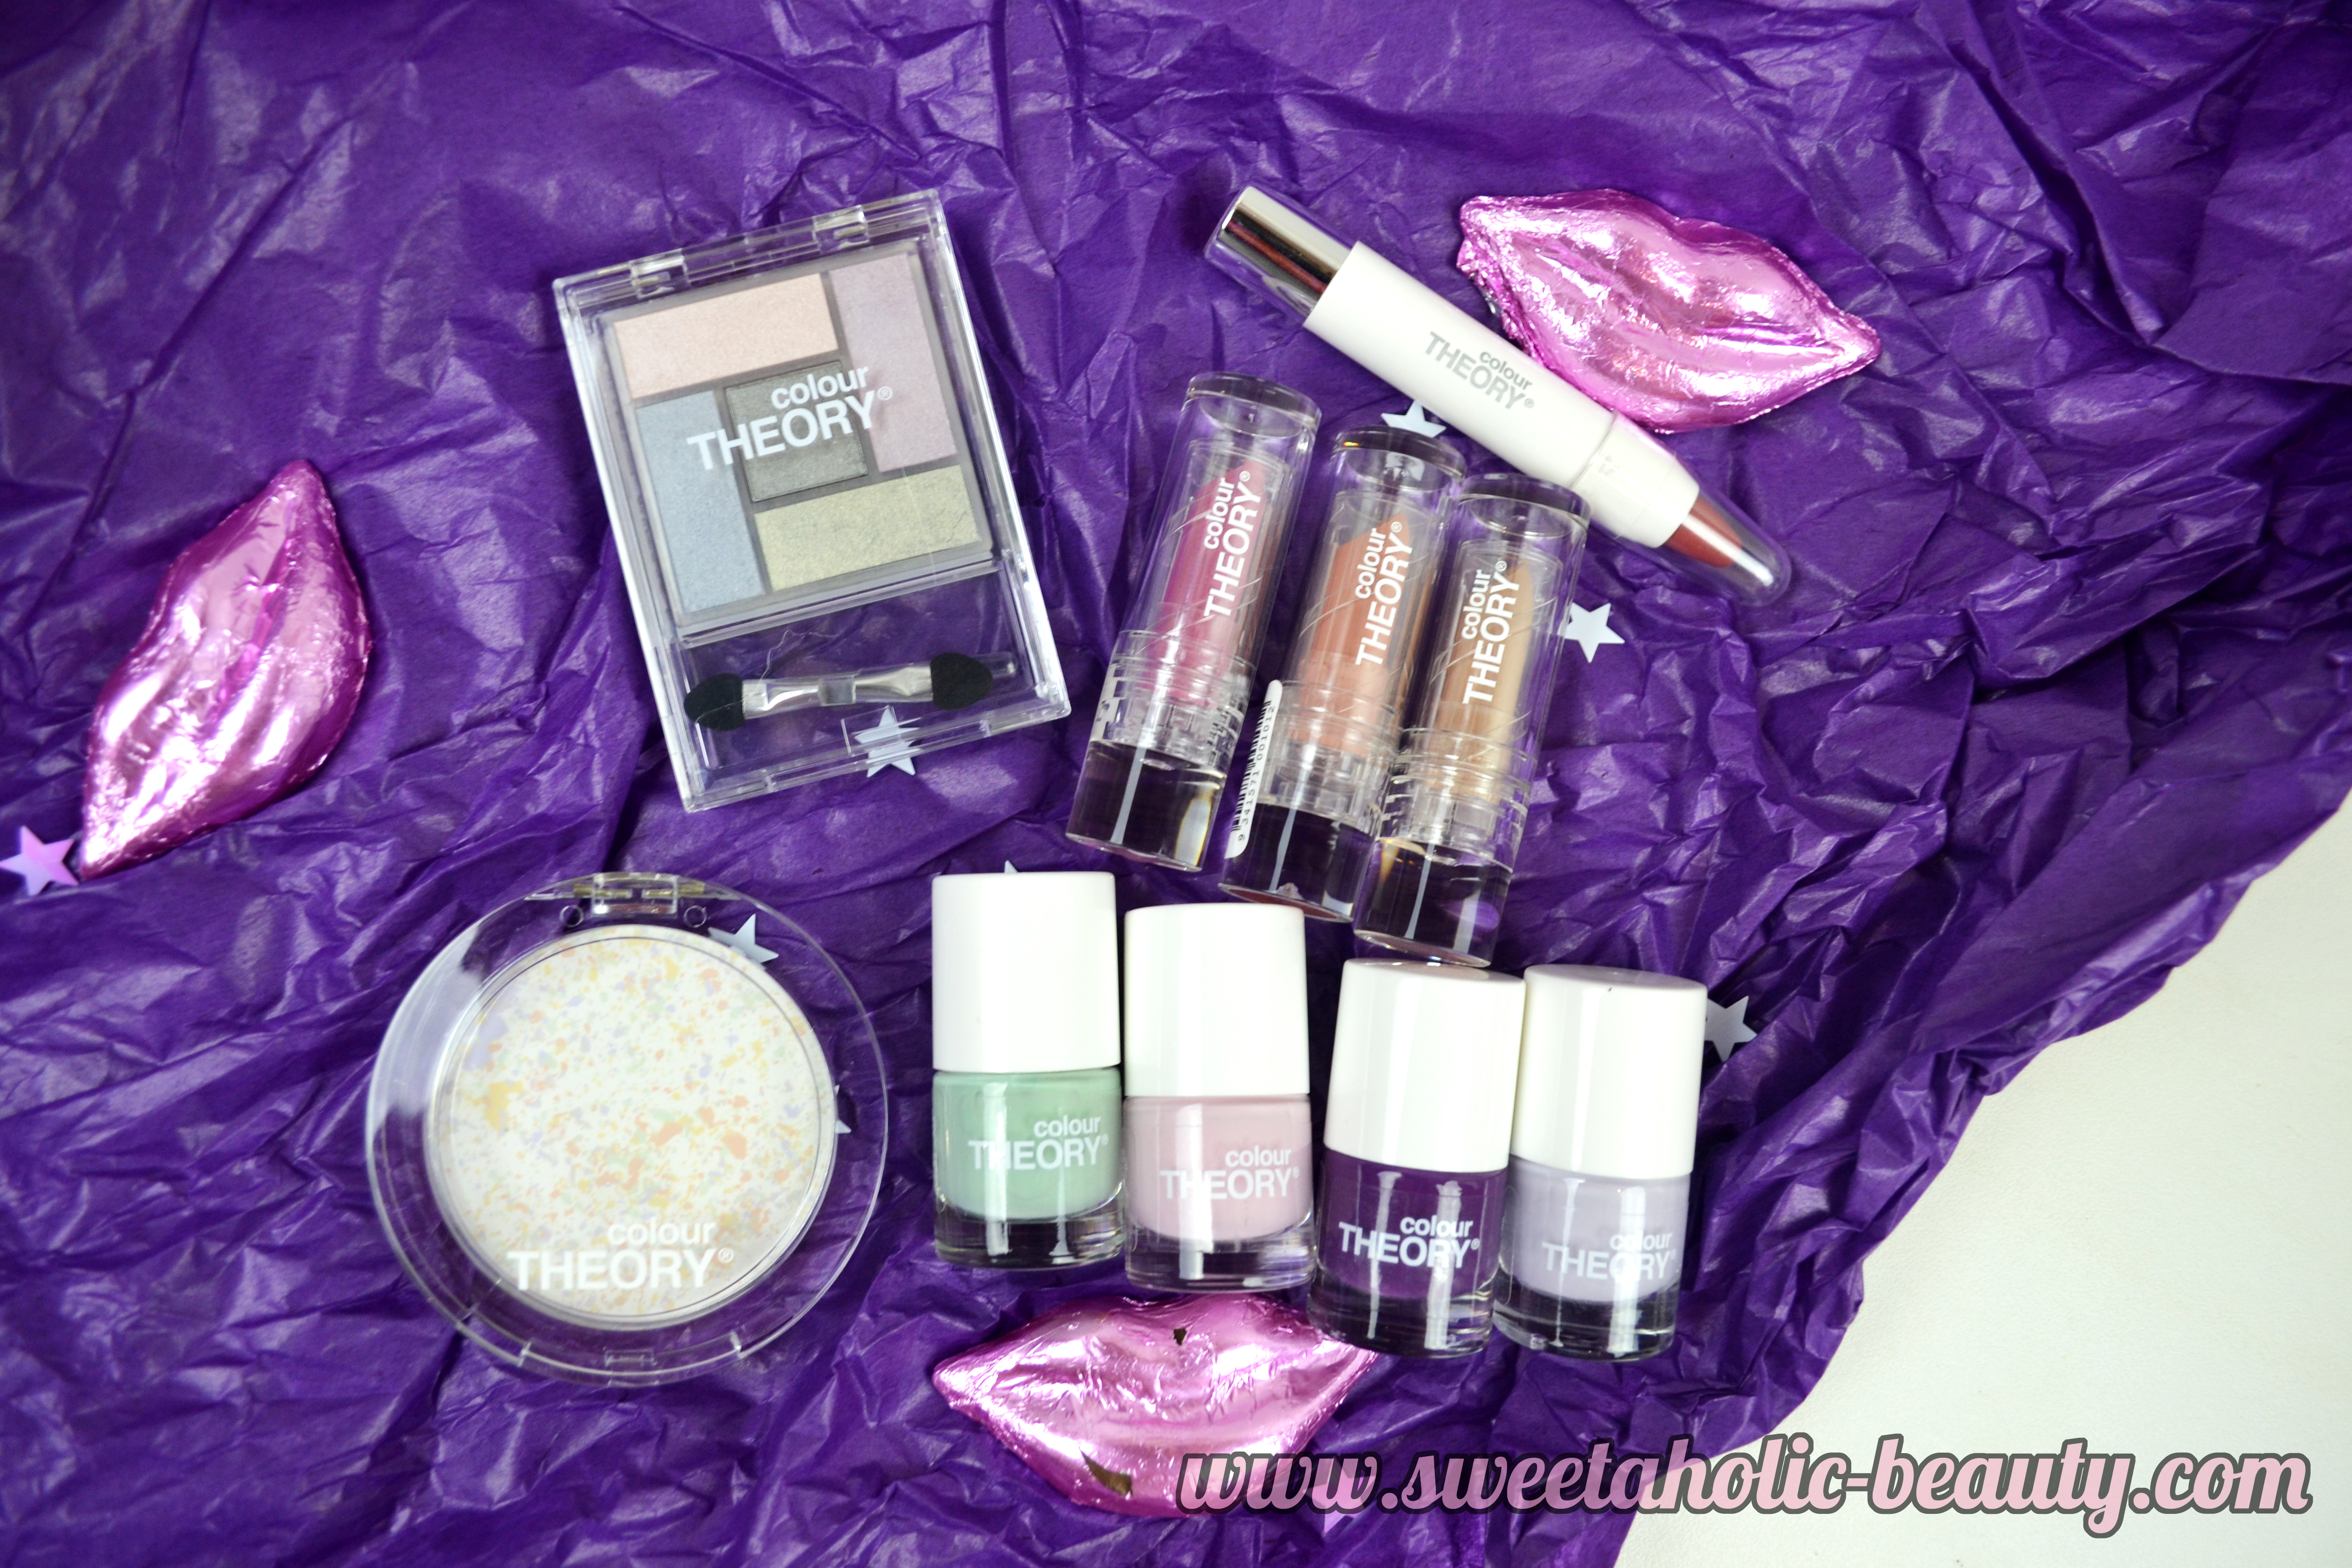 Colour Theory Nordic Light Collection First Impression & Swatches - Sweetaholic Beauty